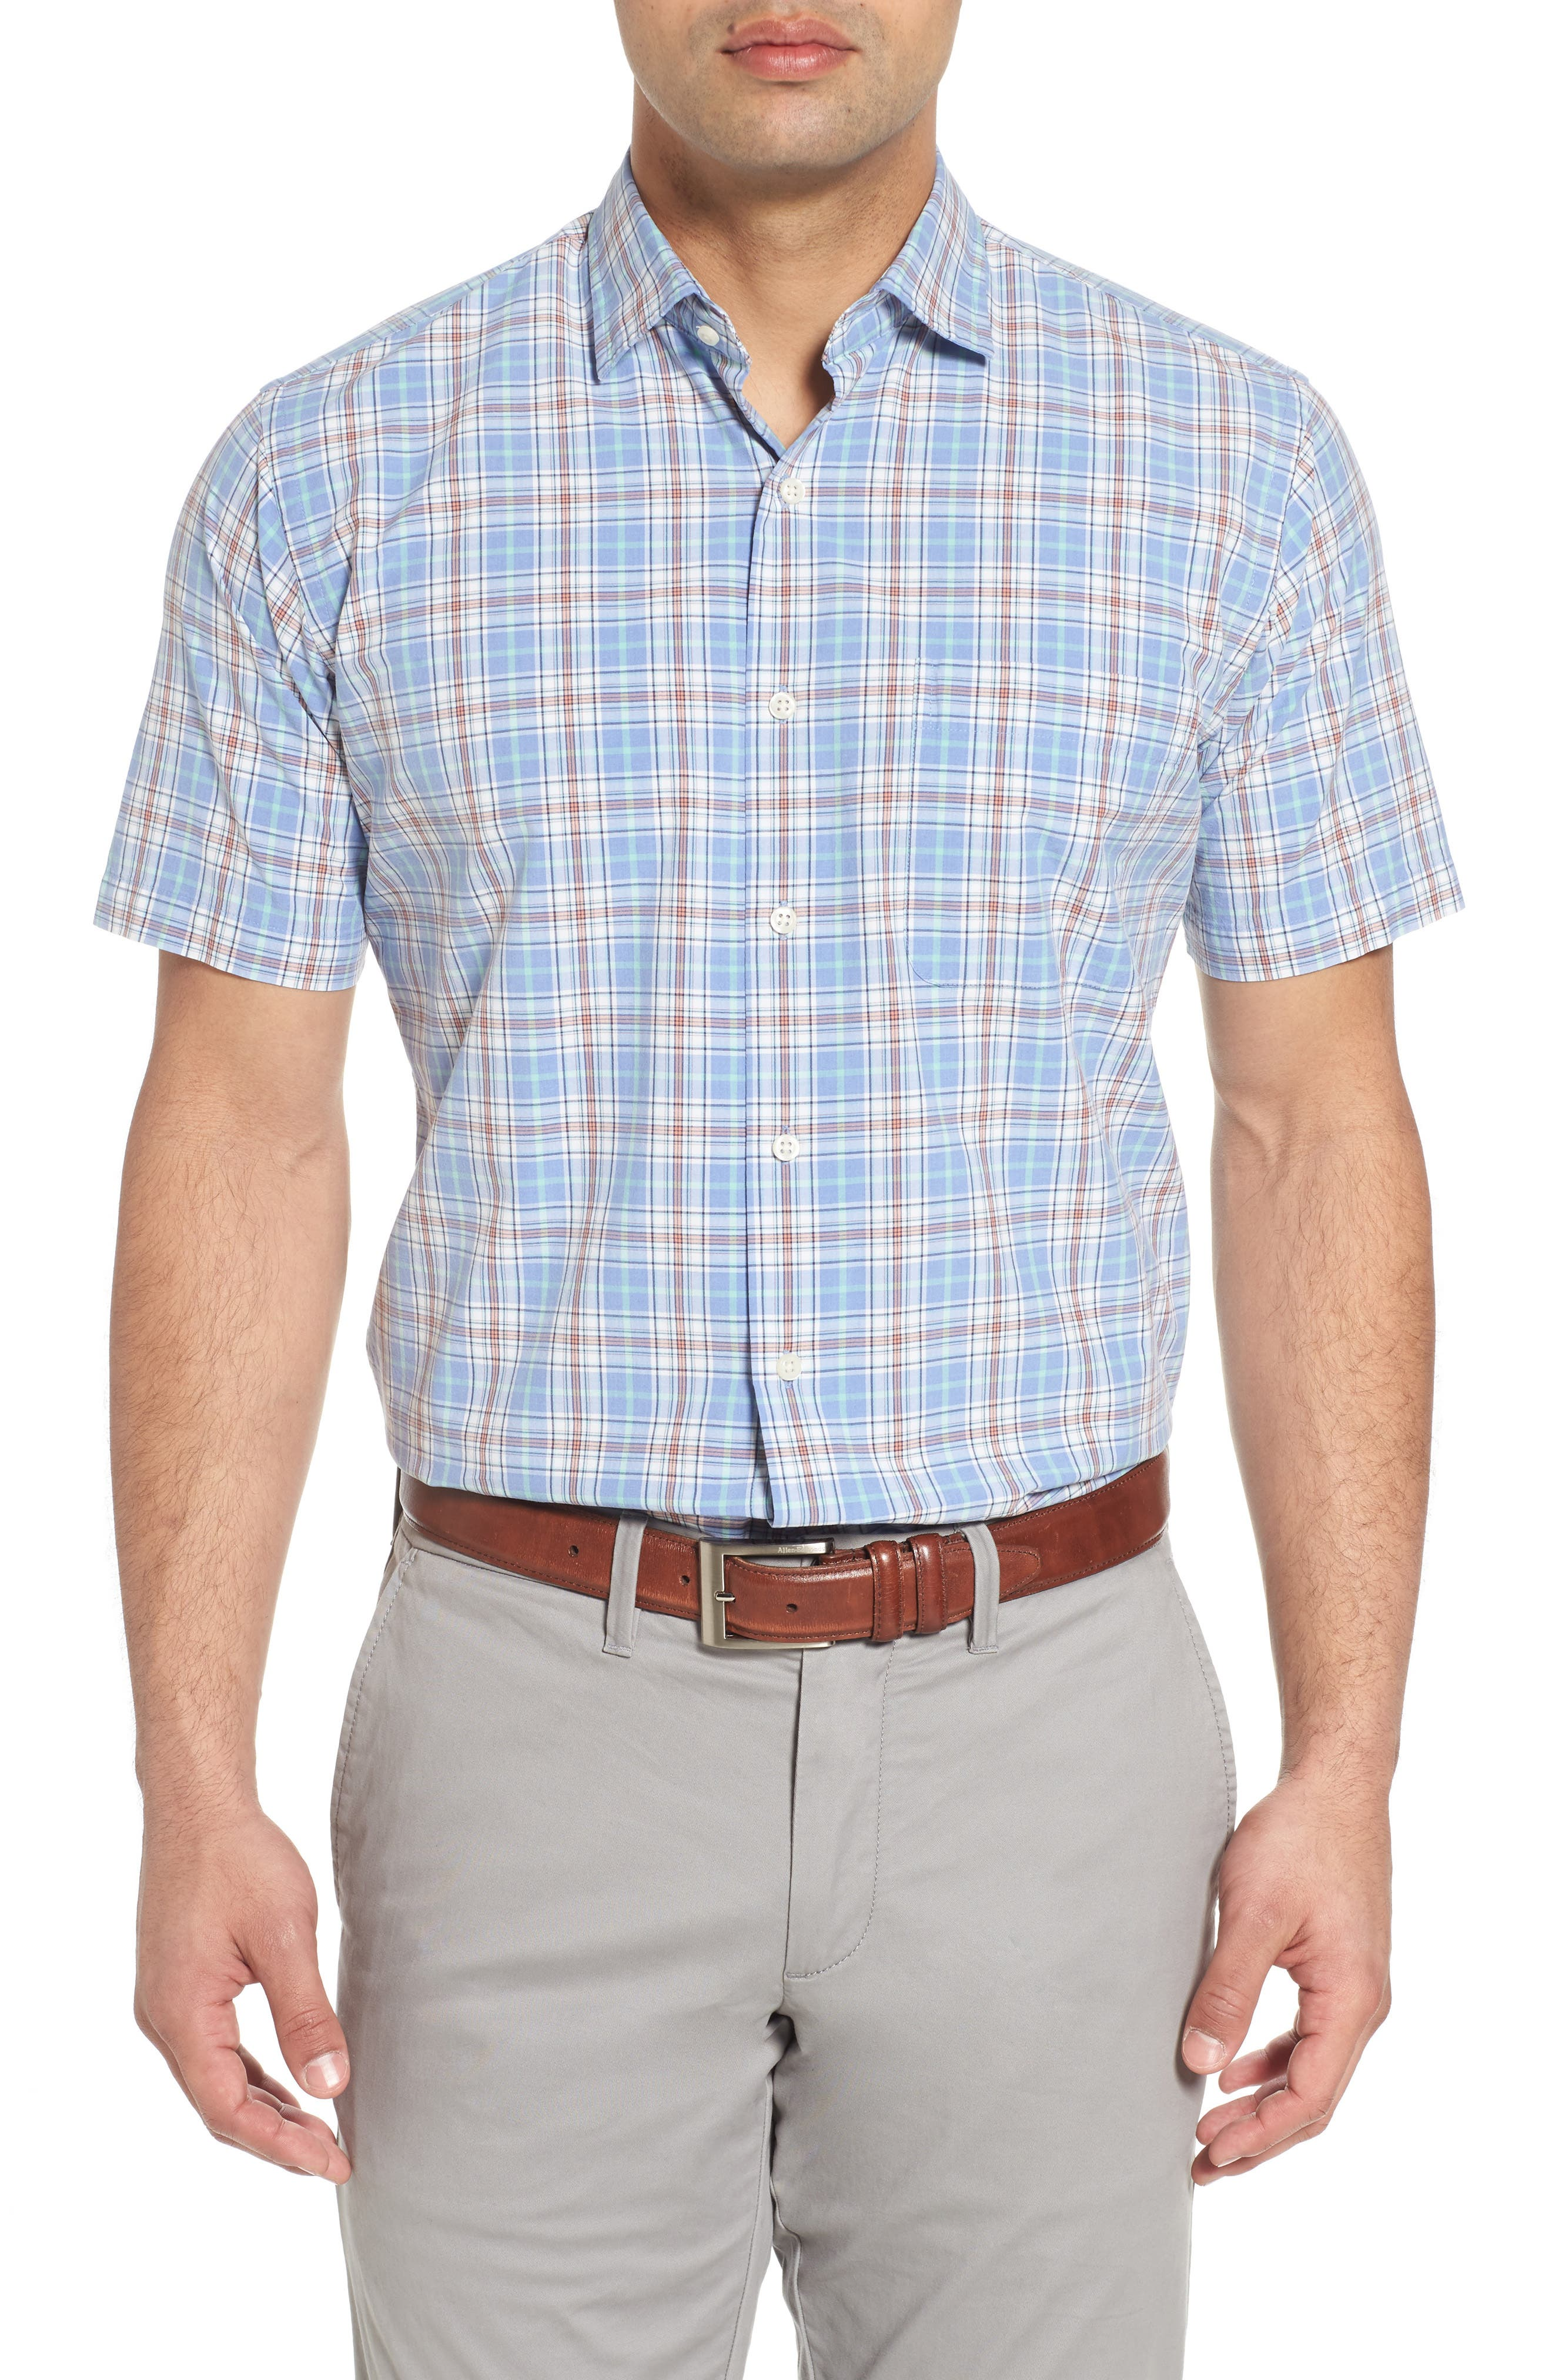 Rockport Plaid Sport Shirt,                             Main thumbnail 1, color,                             Bonnet